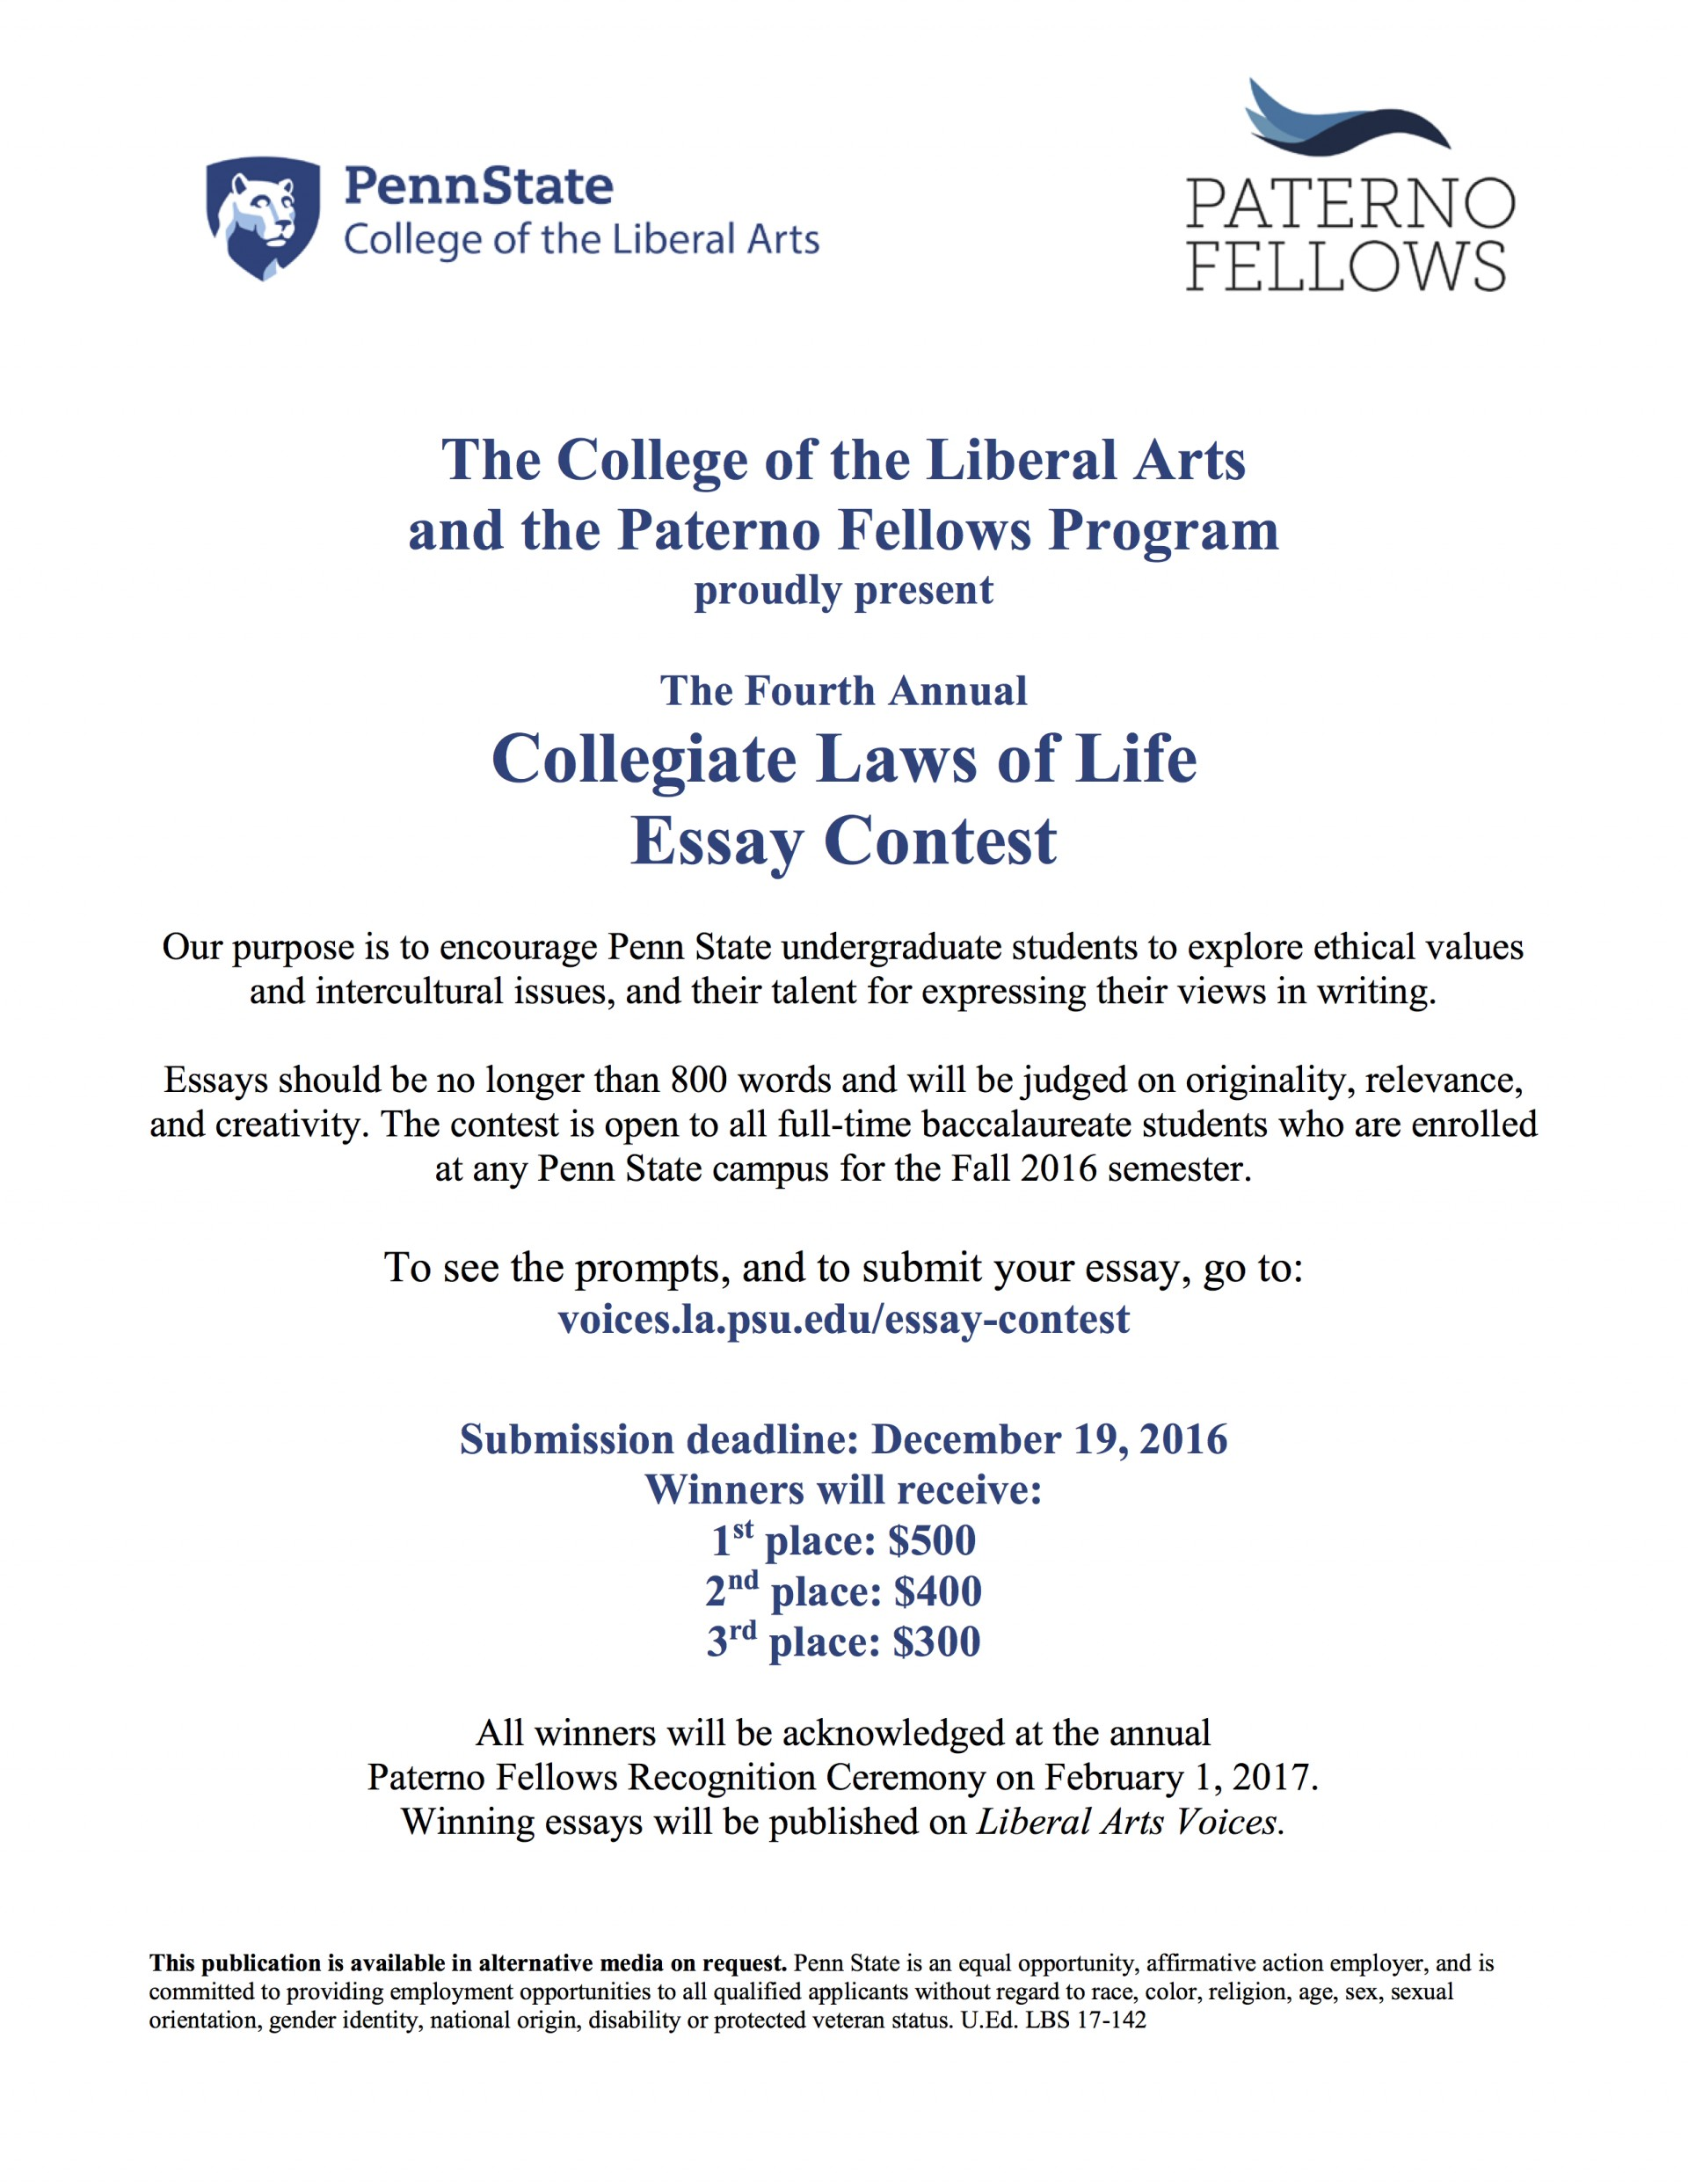 007 Essay Example Law Of Life Collegiate Laws Contest Awesome Ohio 2016 Competition Bahamas 2018 1920